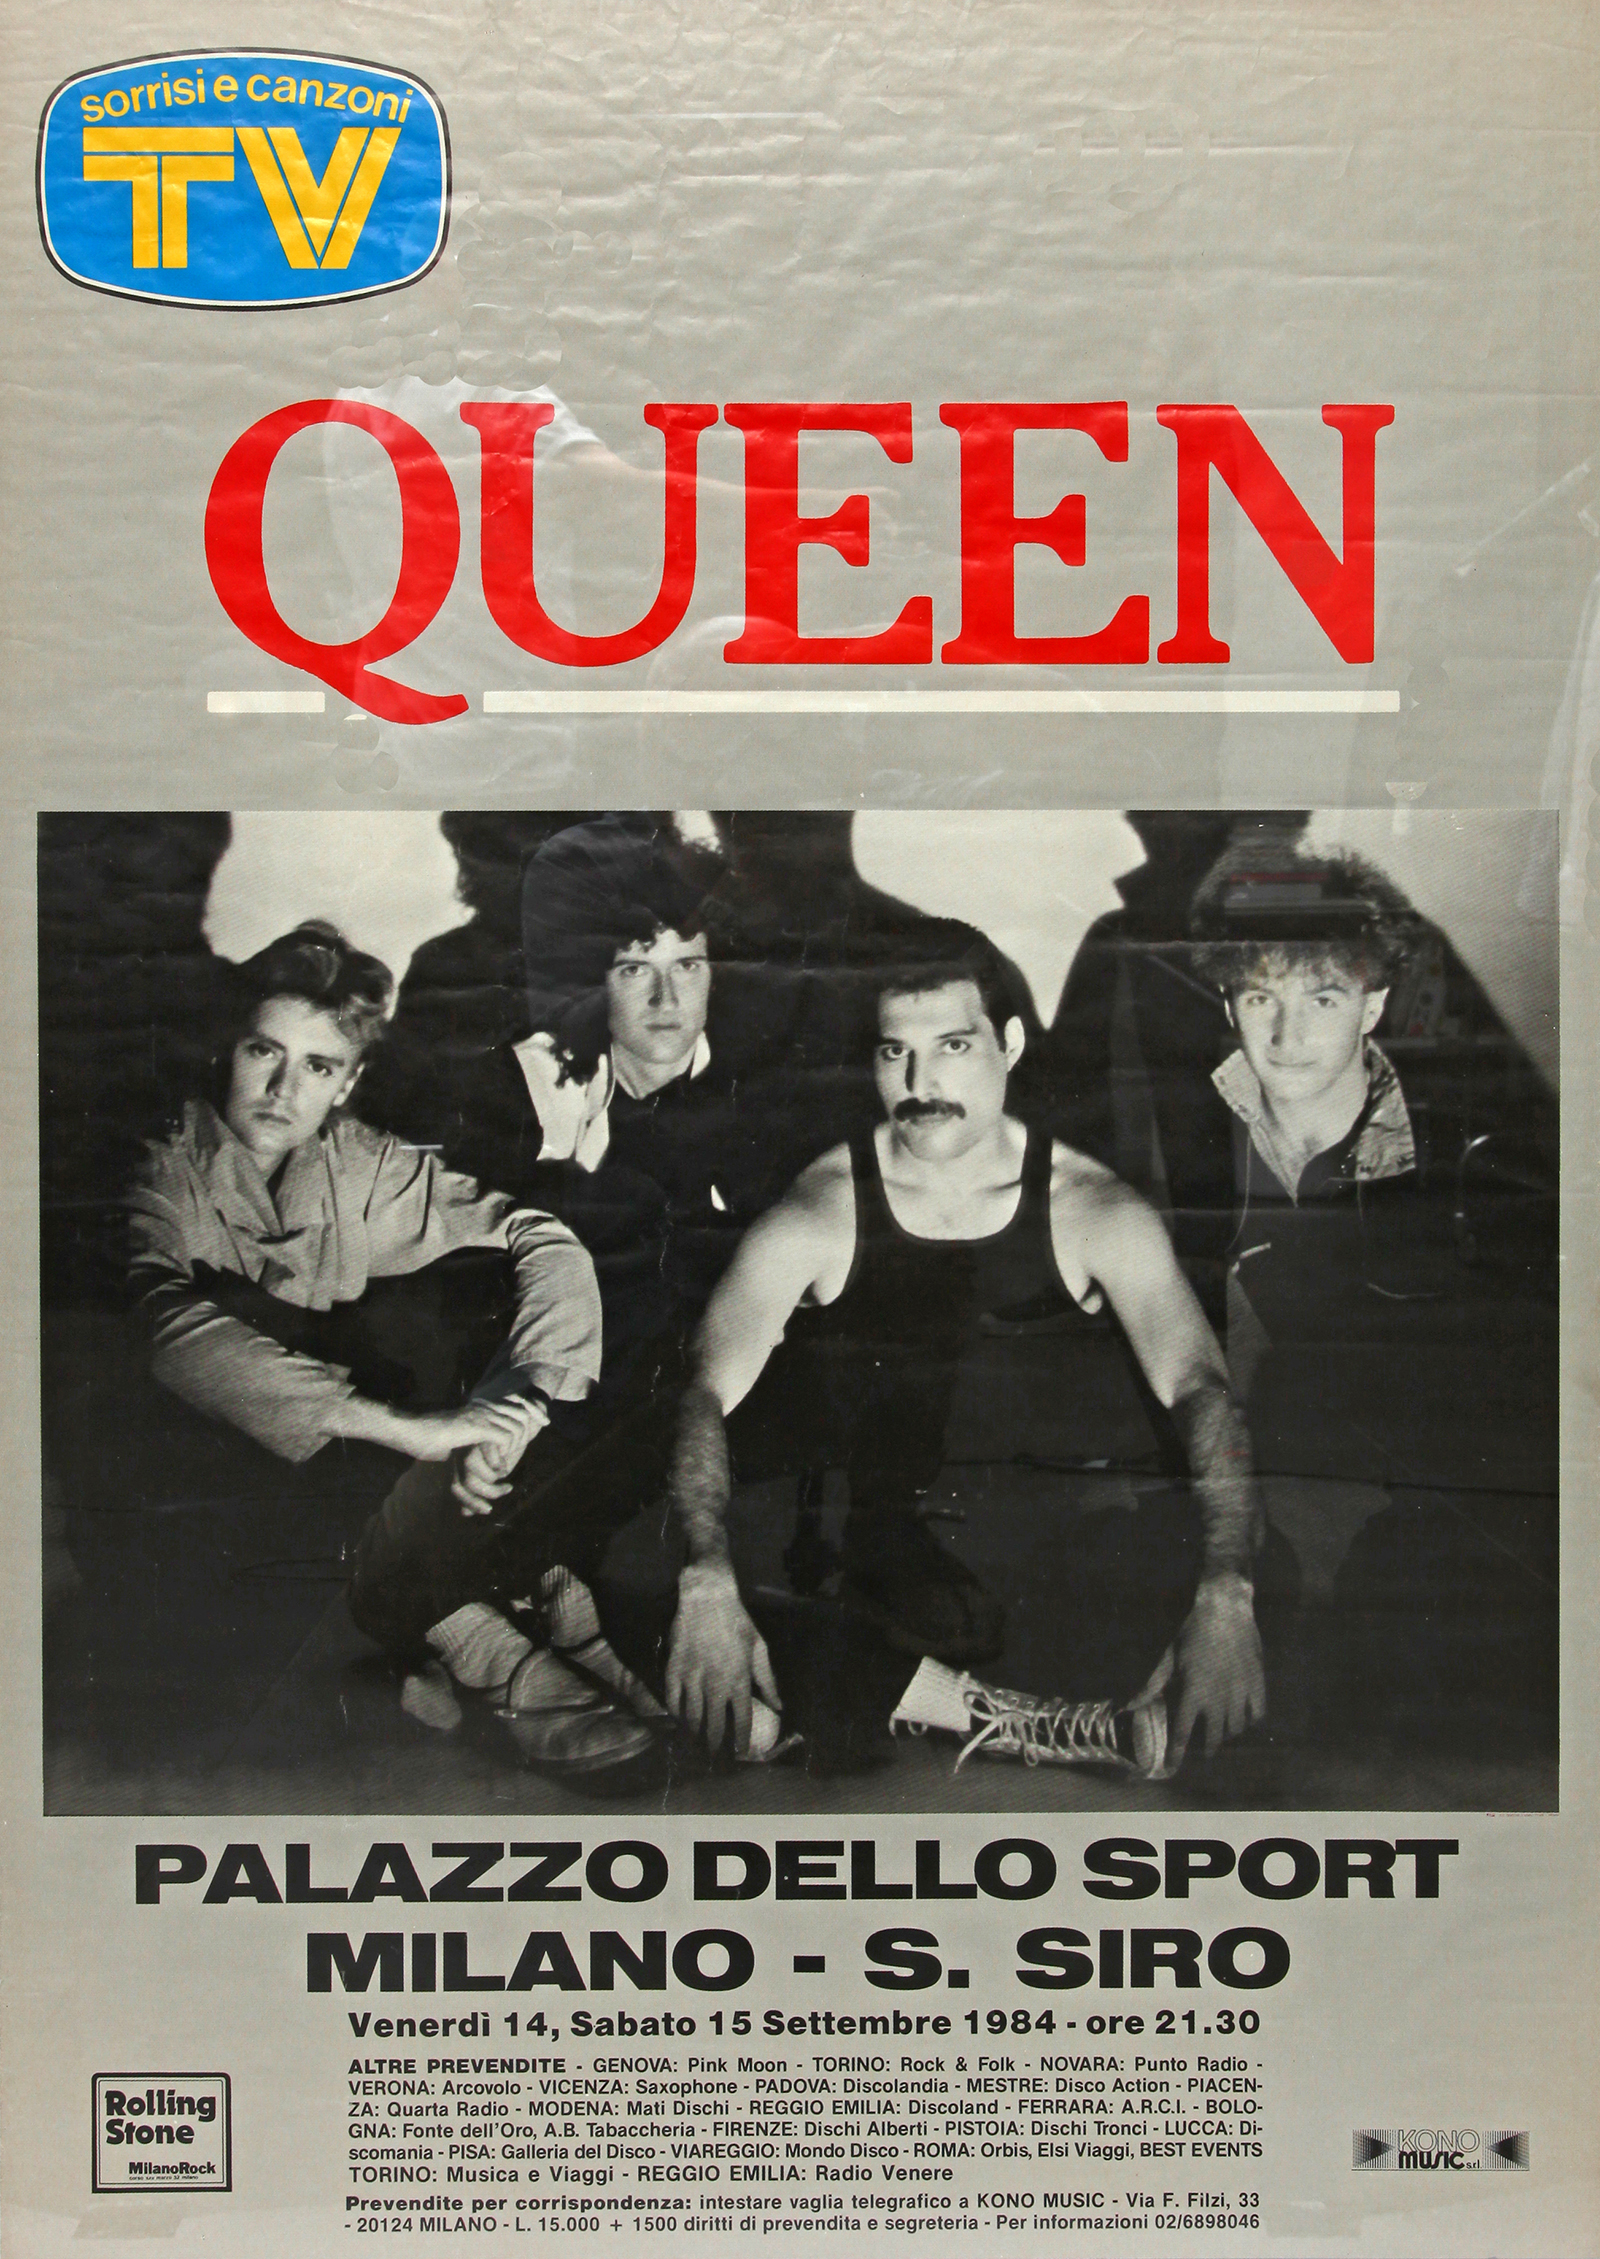 Queen in Milan on 14.-15.09.1984